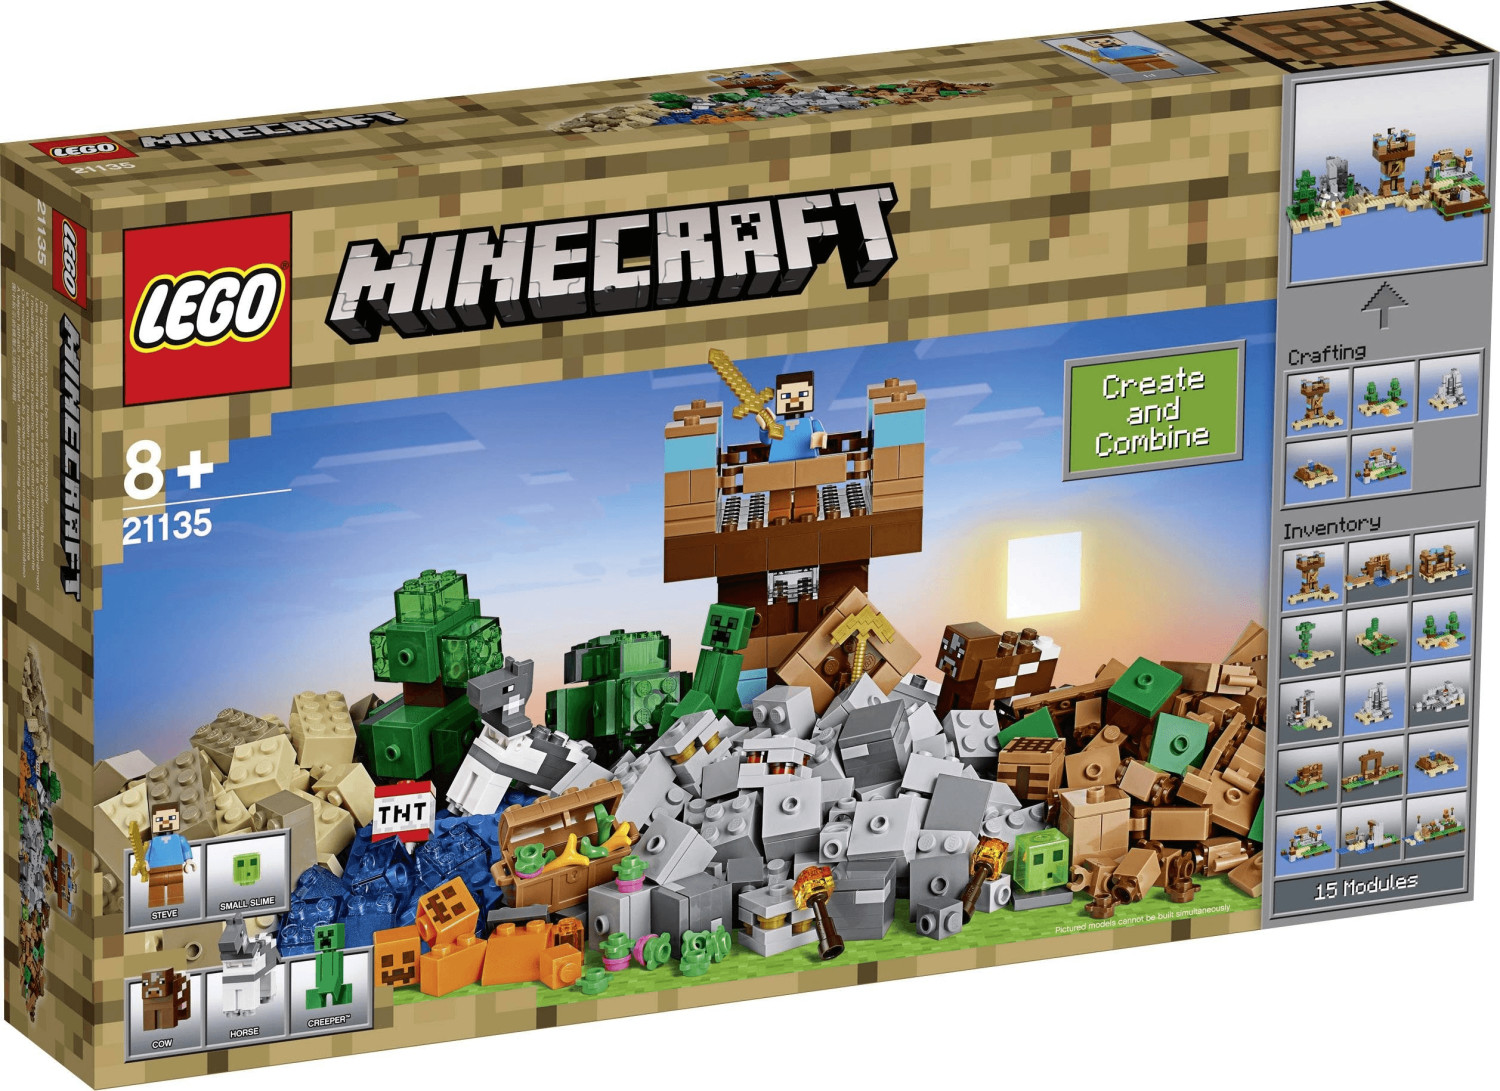 LEGO Minecraft - Crafting-Box 2.0 (21135)